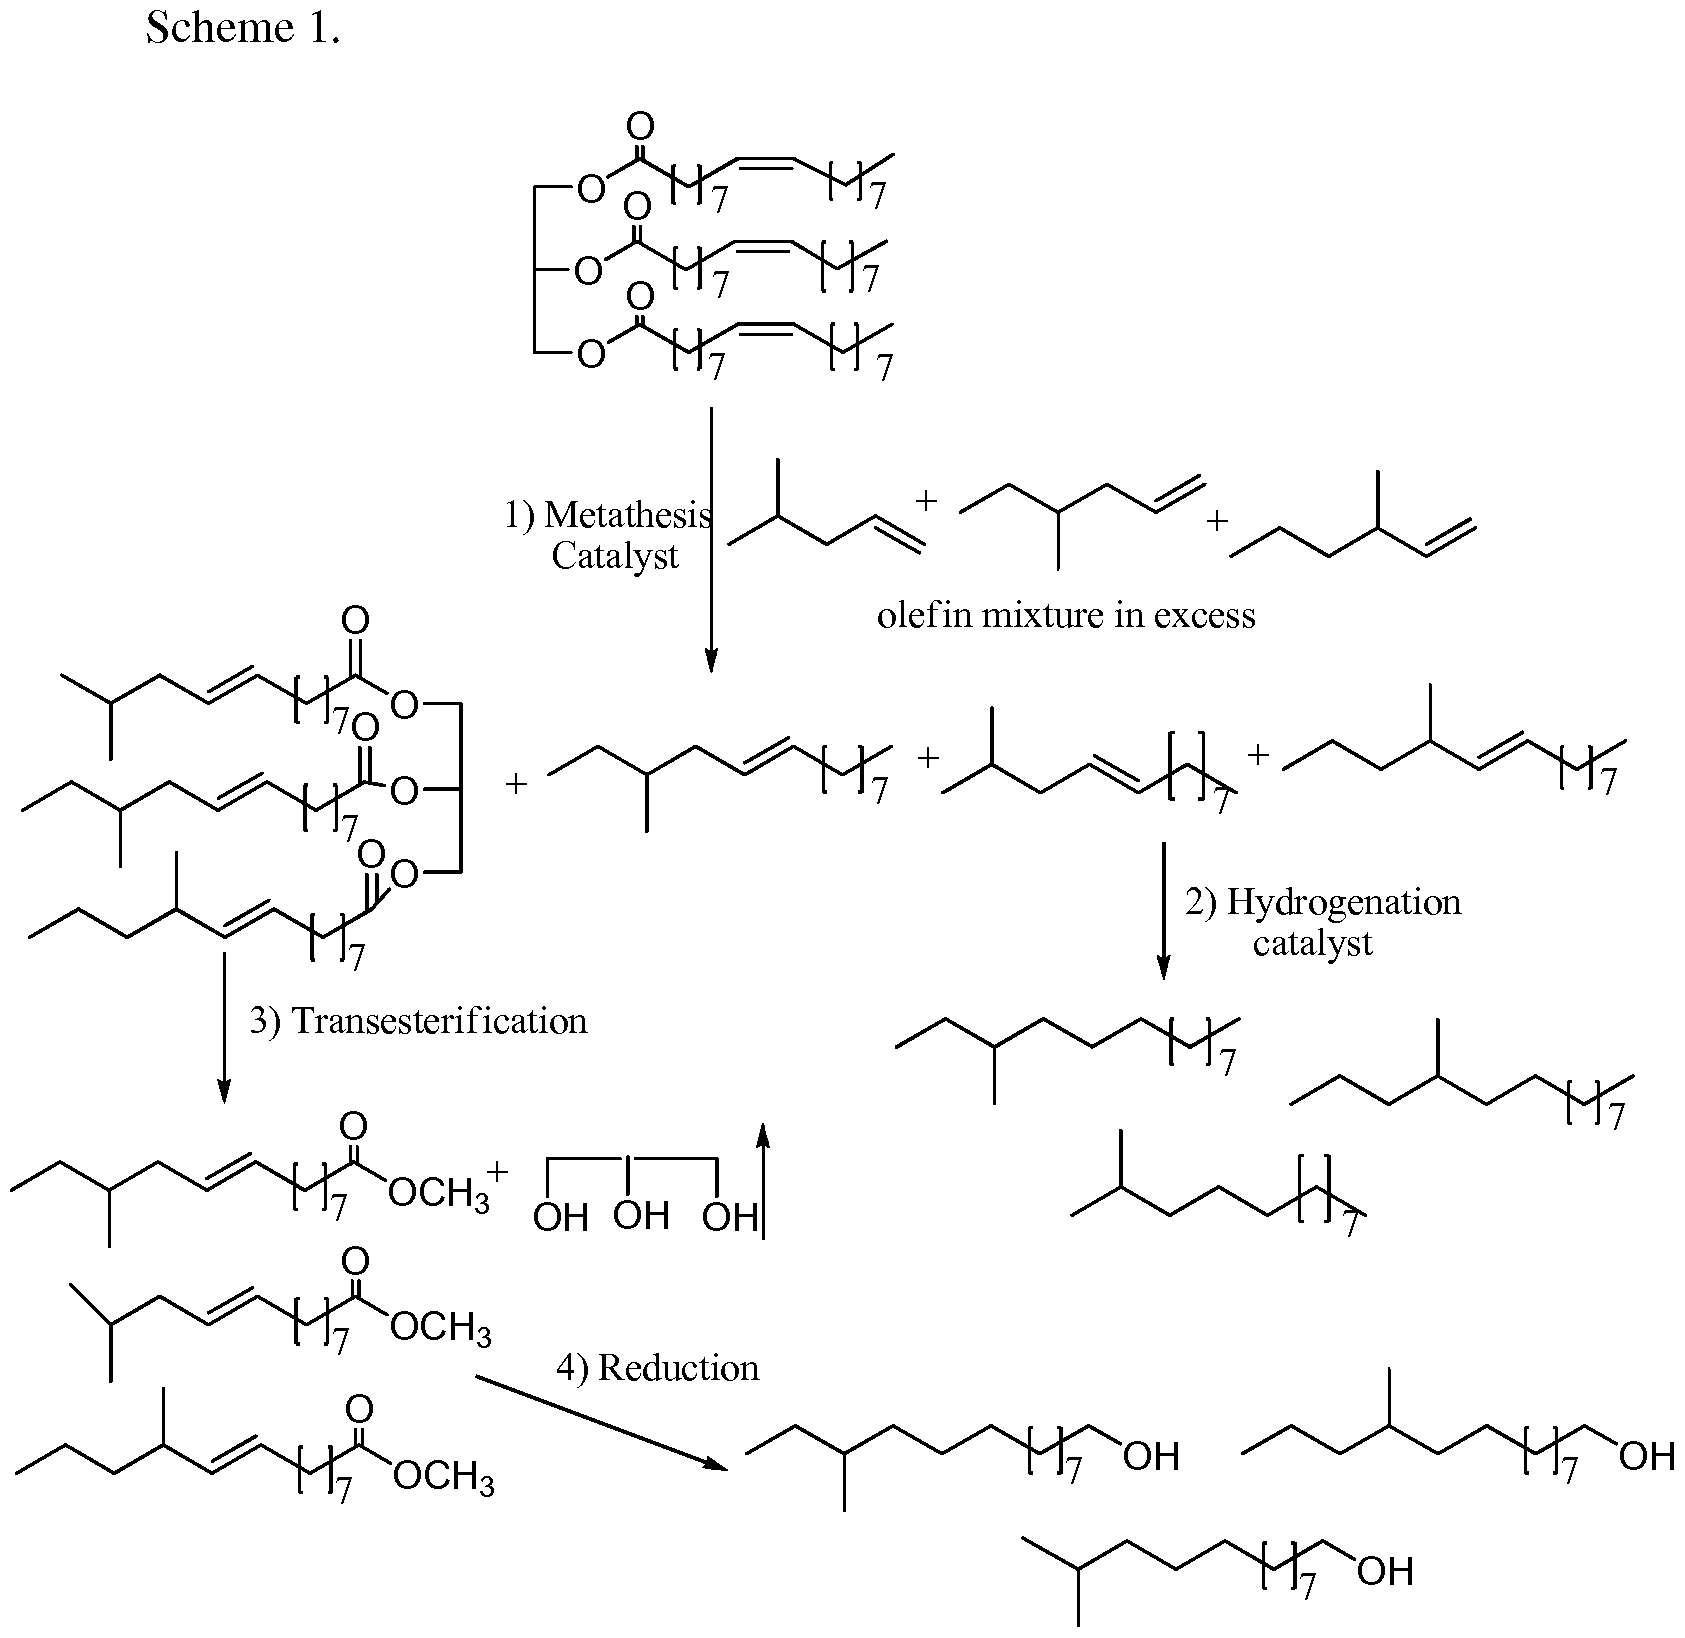 tungsten hexachloride metathesis Soybean oil was metathesized with the standard homogenous metathesis catalyst, which consisted of tungsten hexachloride (wcl 6) and tetramethyl tin (me 4 sn) in chlorobenzene as solvent the reactions were terminated at different time intervals.